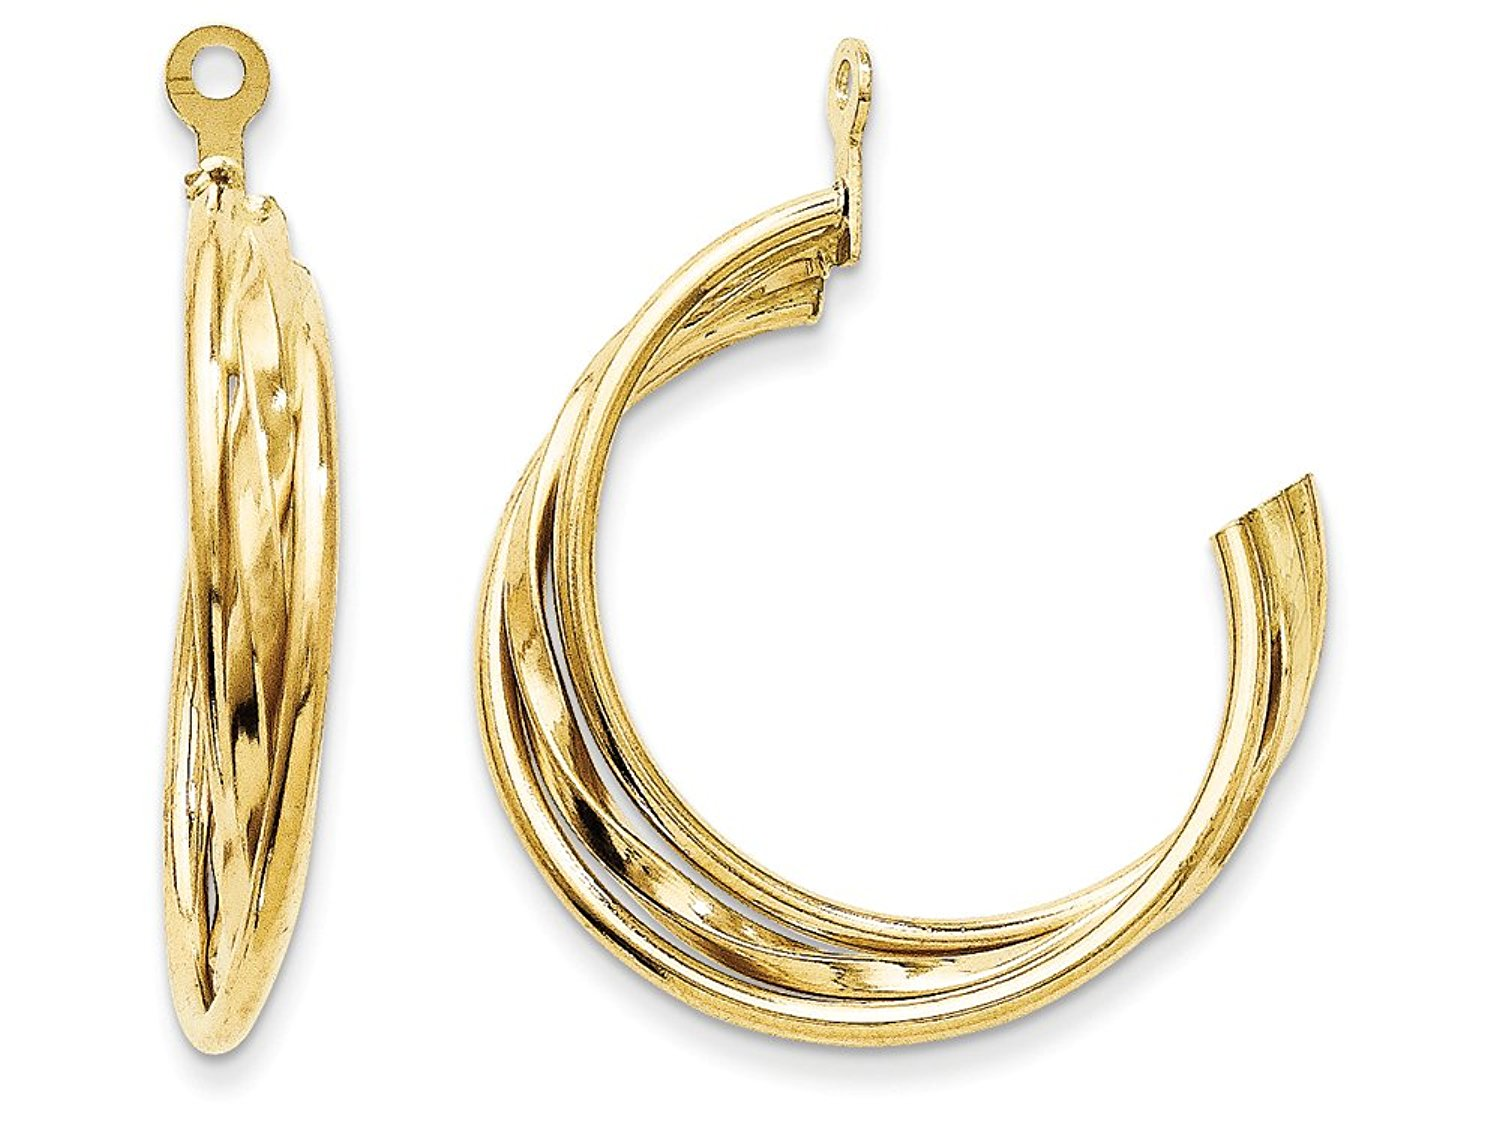 14 kt Yellow Gold Polished Hoop Earring Jackets